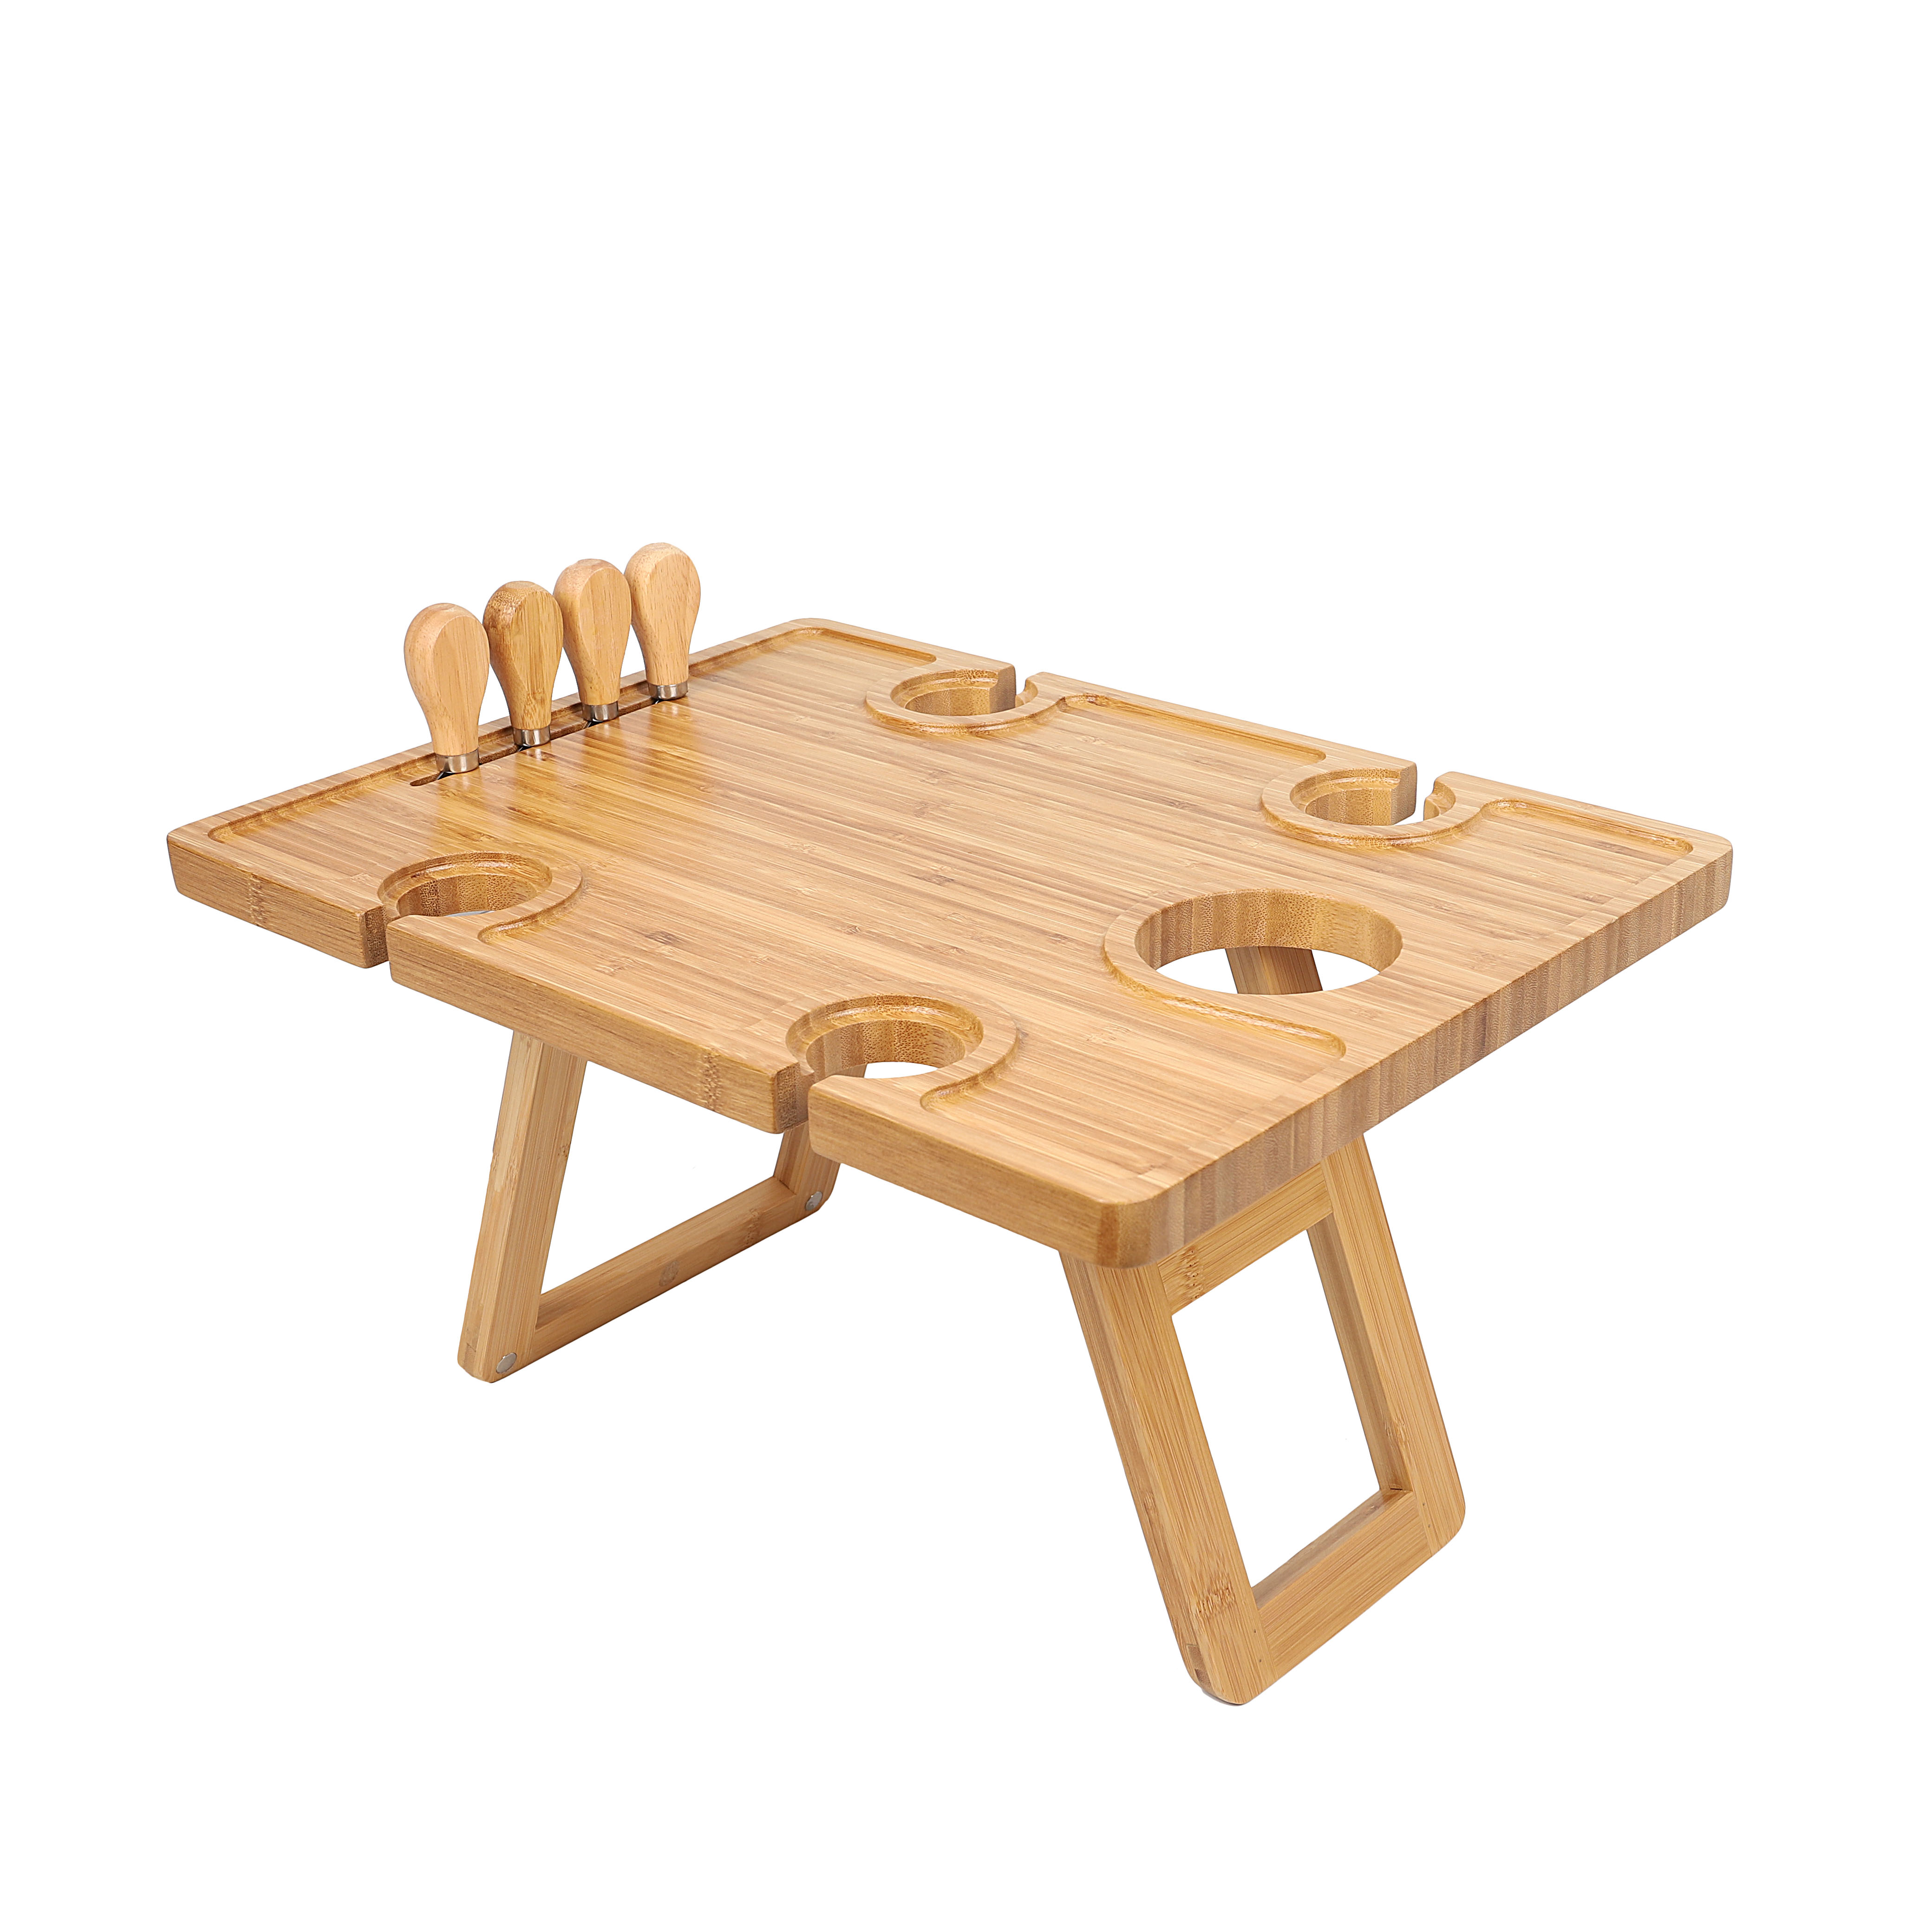 Bamboo Wooden Acacia Outdoor Collapsible Folding Snack Wine Picnic Table Park Portable with Wine Glass Holder